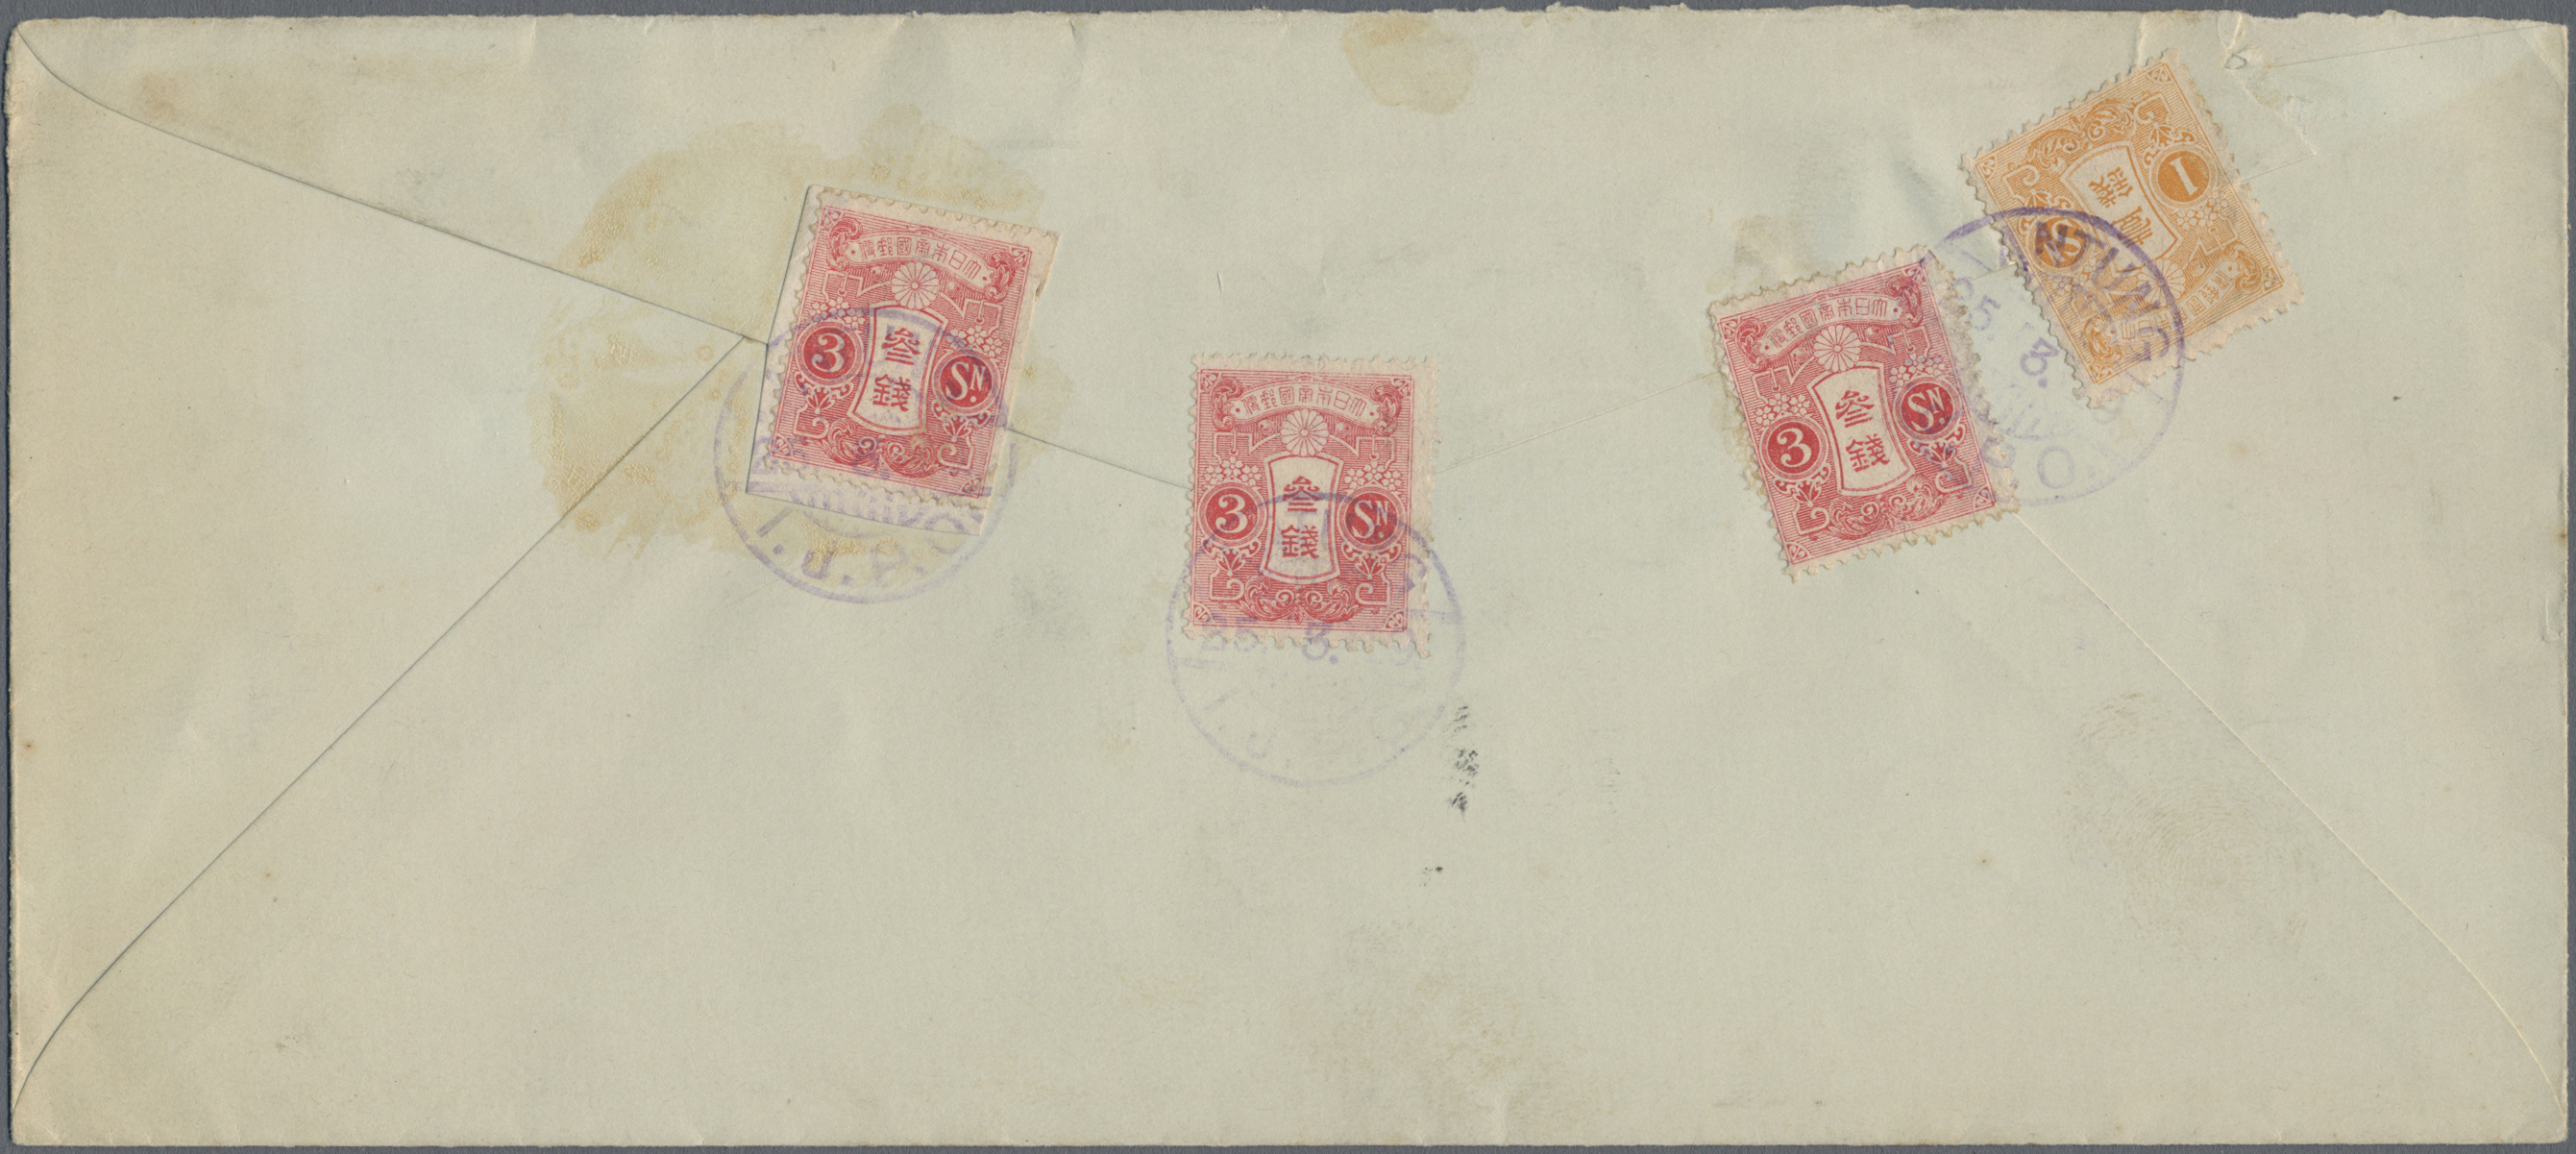 Lot 00092 - japanische post in china  -  Auktionshaus Christoph Gärtner GmbH & Co. KG Special auction